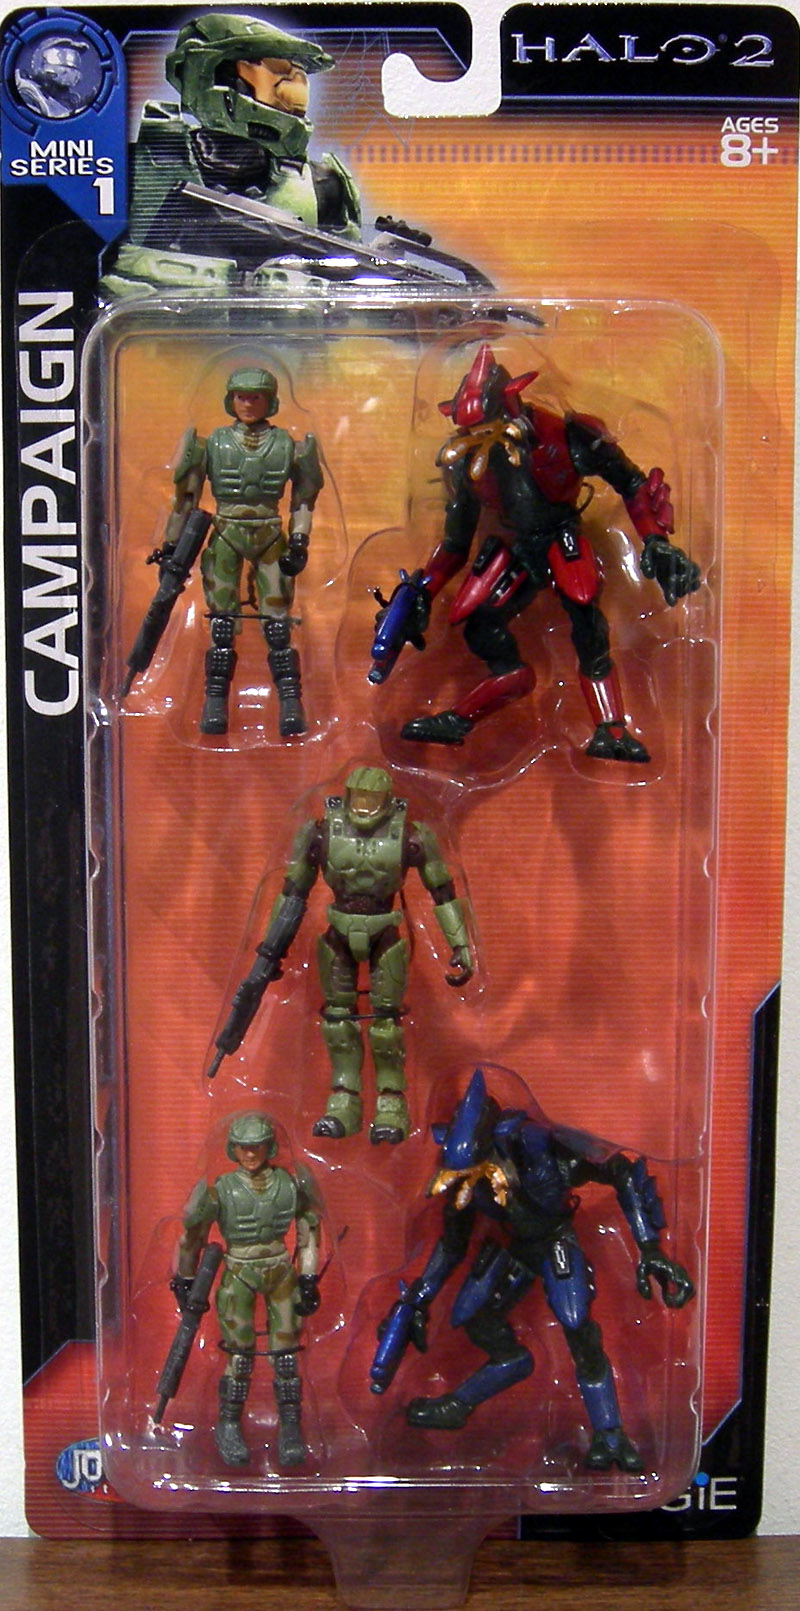 Campaign 5-Pack (Halo 2, Mini Series 1)